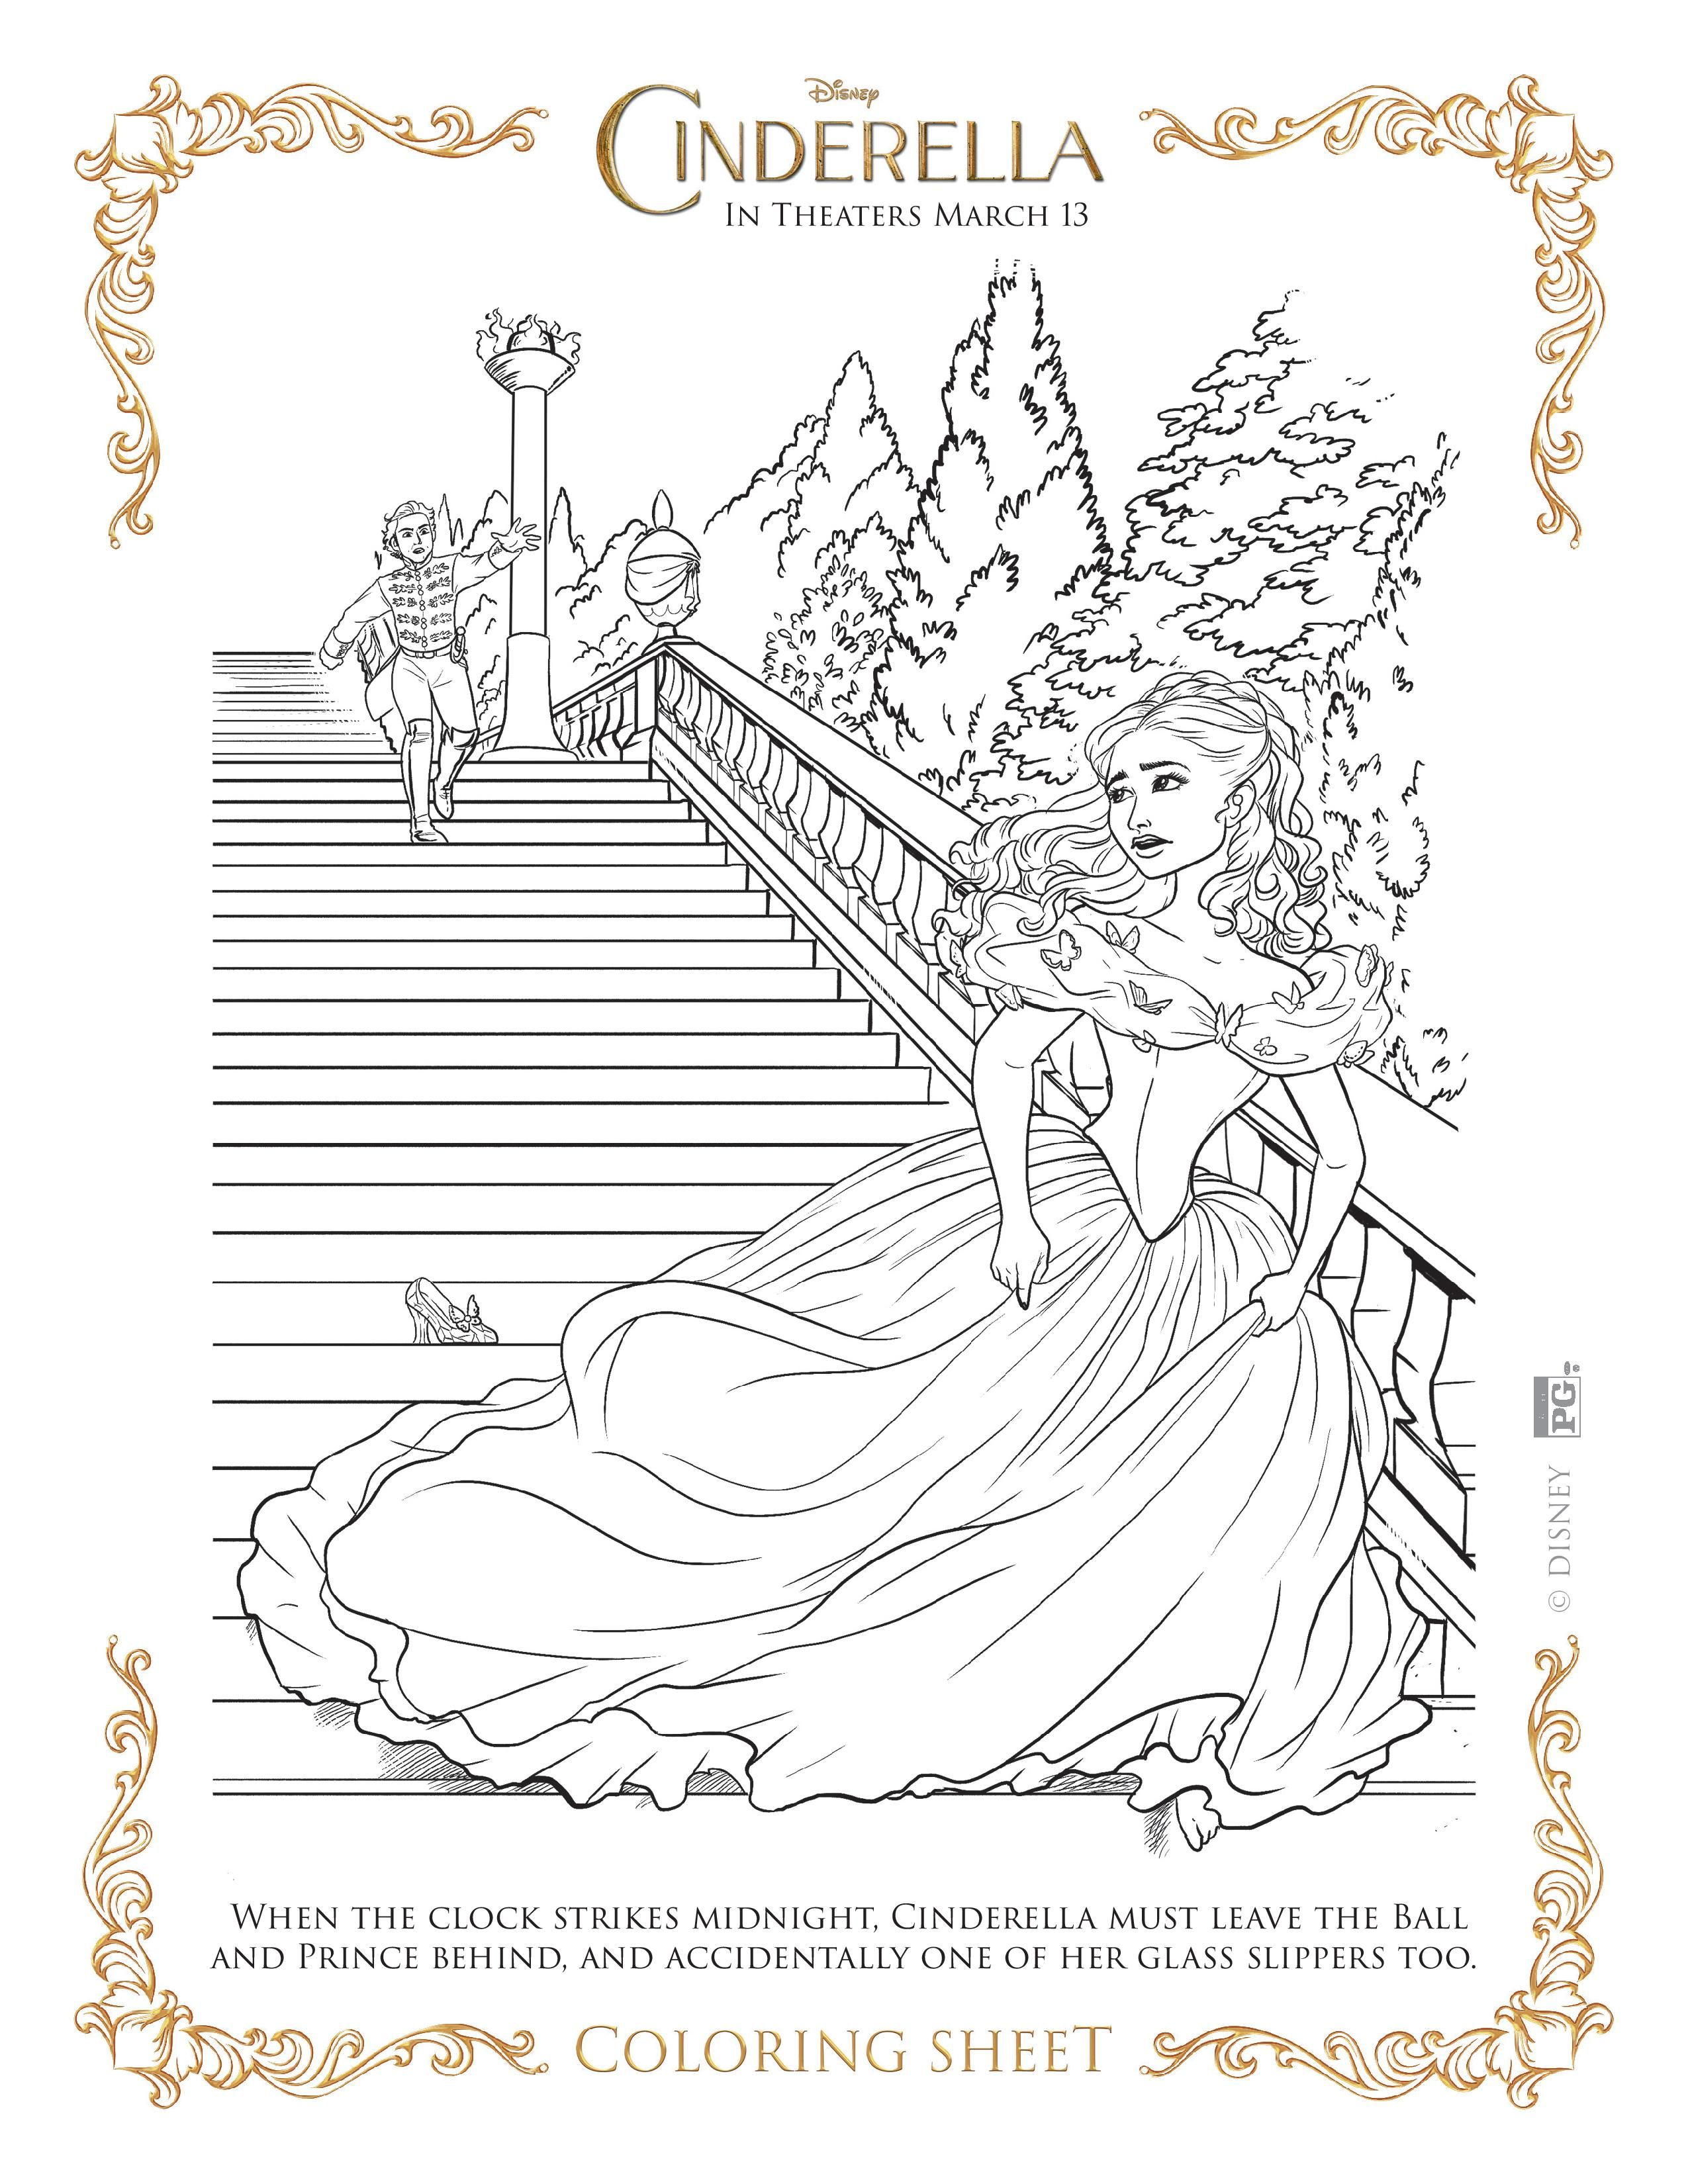 NEW Disney's Cinderella Coloring Pages and Activity Sheets